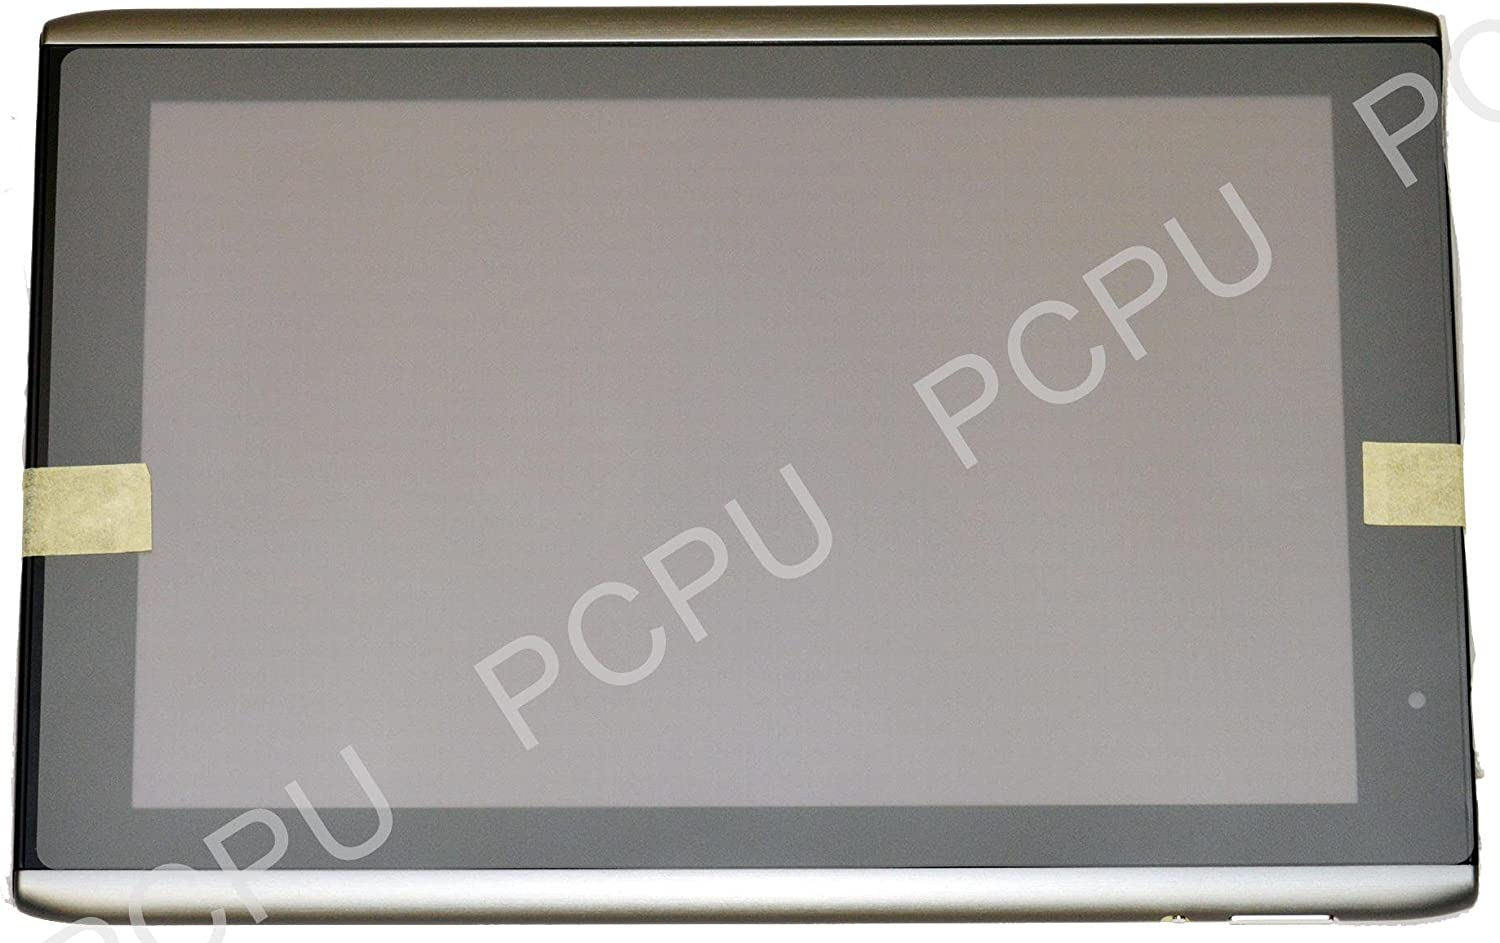 "6M.H6002.001 Acer Iconia A500 10.1"" Tablet LCD Assembly w/Digitizer New"